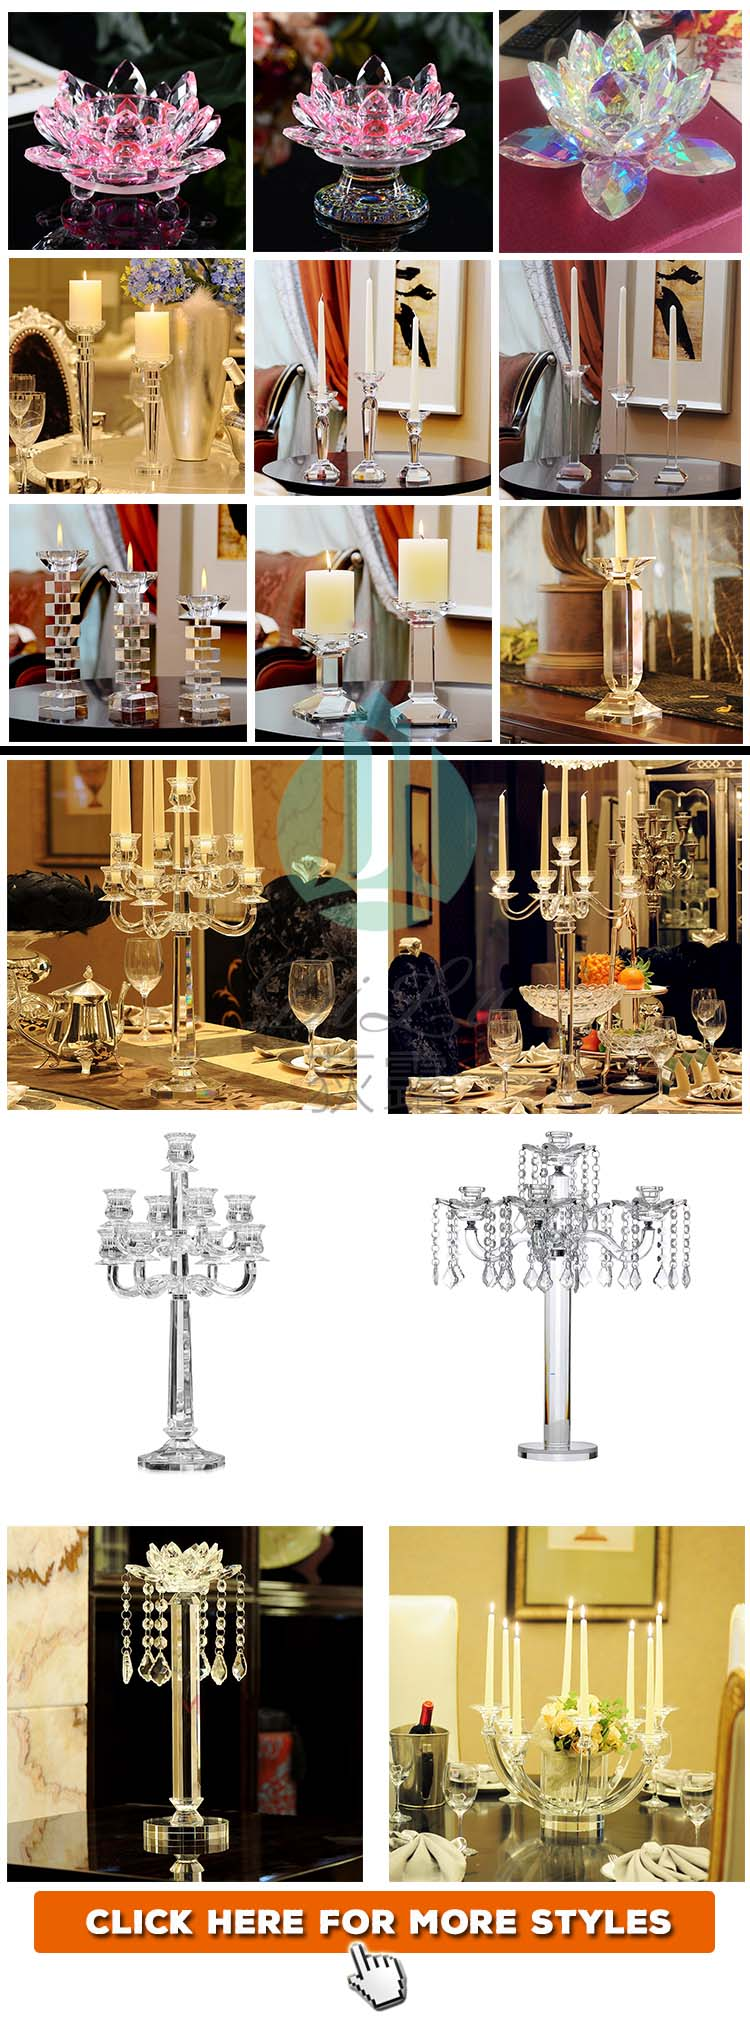 DL-RTS021 Wholesale single tall Crystal Long-stemmed glass candle holders for wedding centerpiece long-stemmed glass hurricane